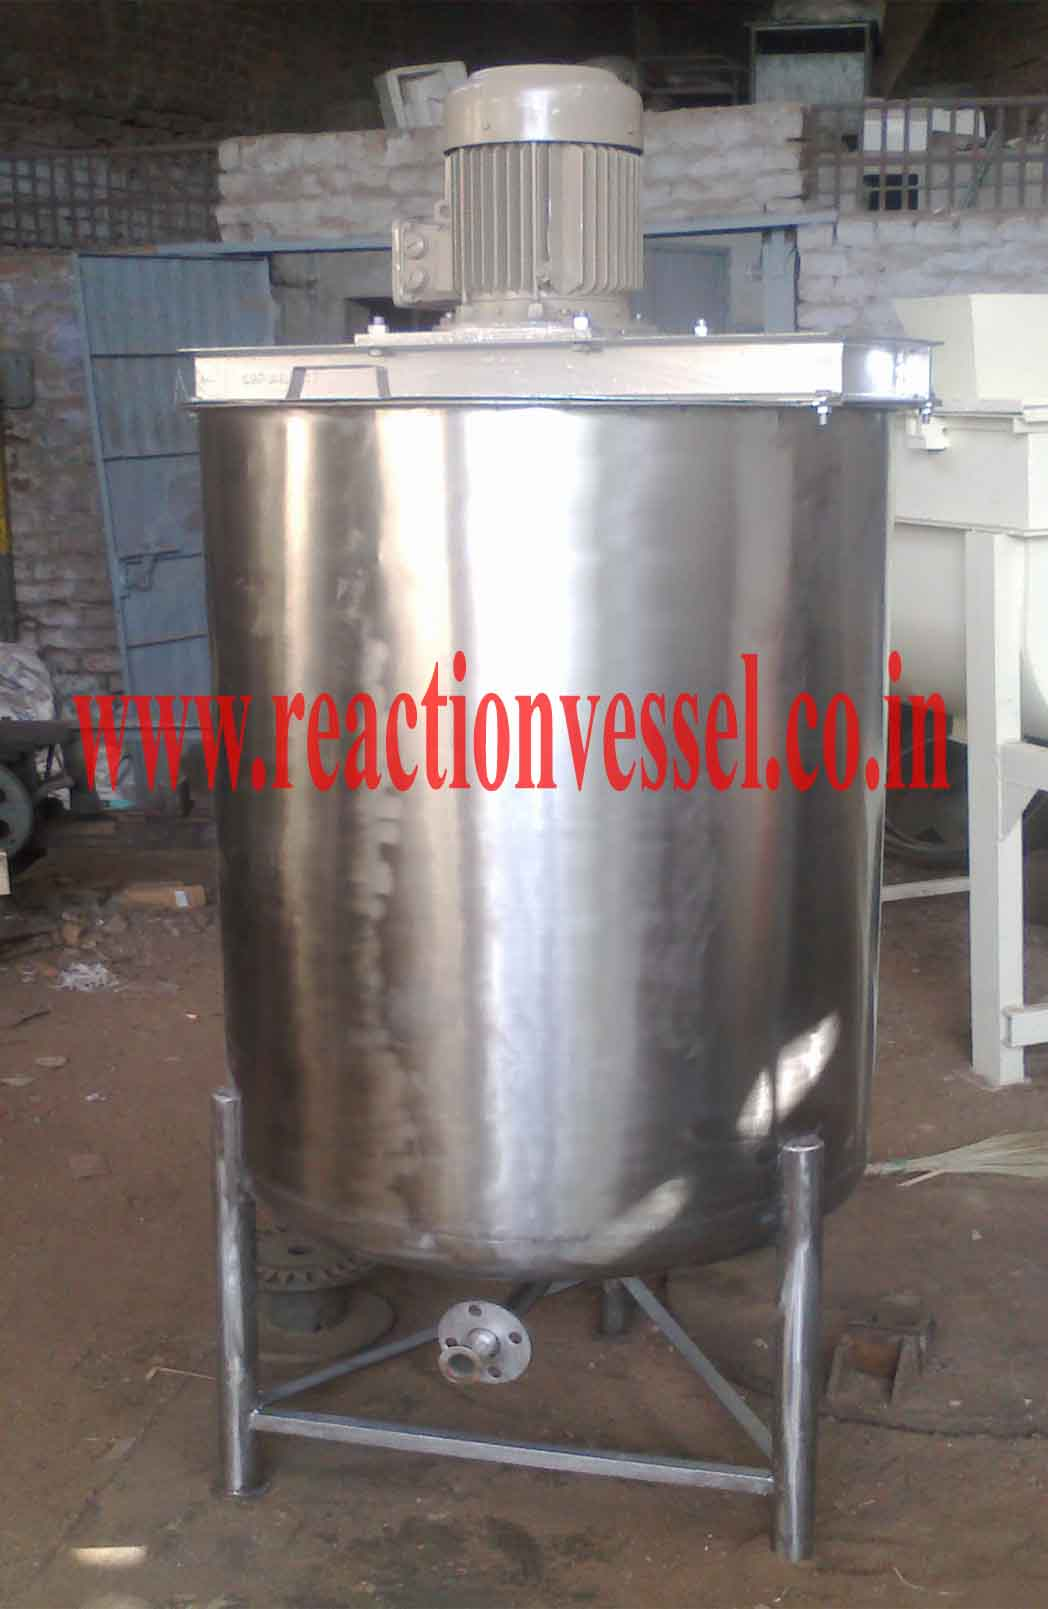 Mixing Vessel, Pharma Preparation Vessel